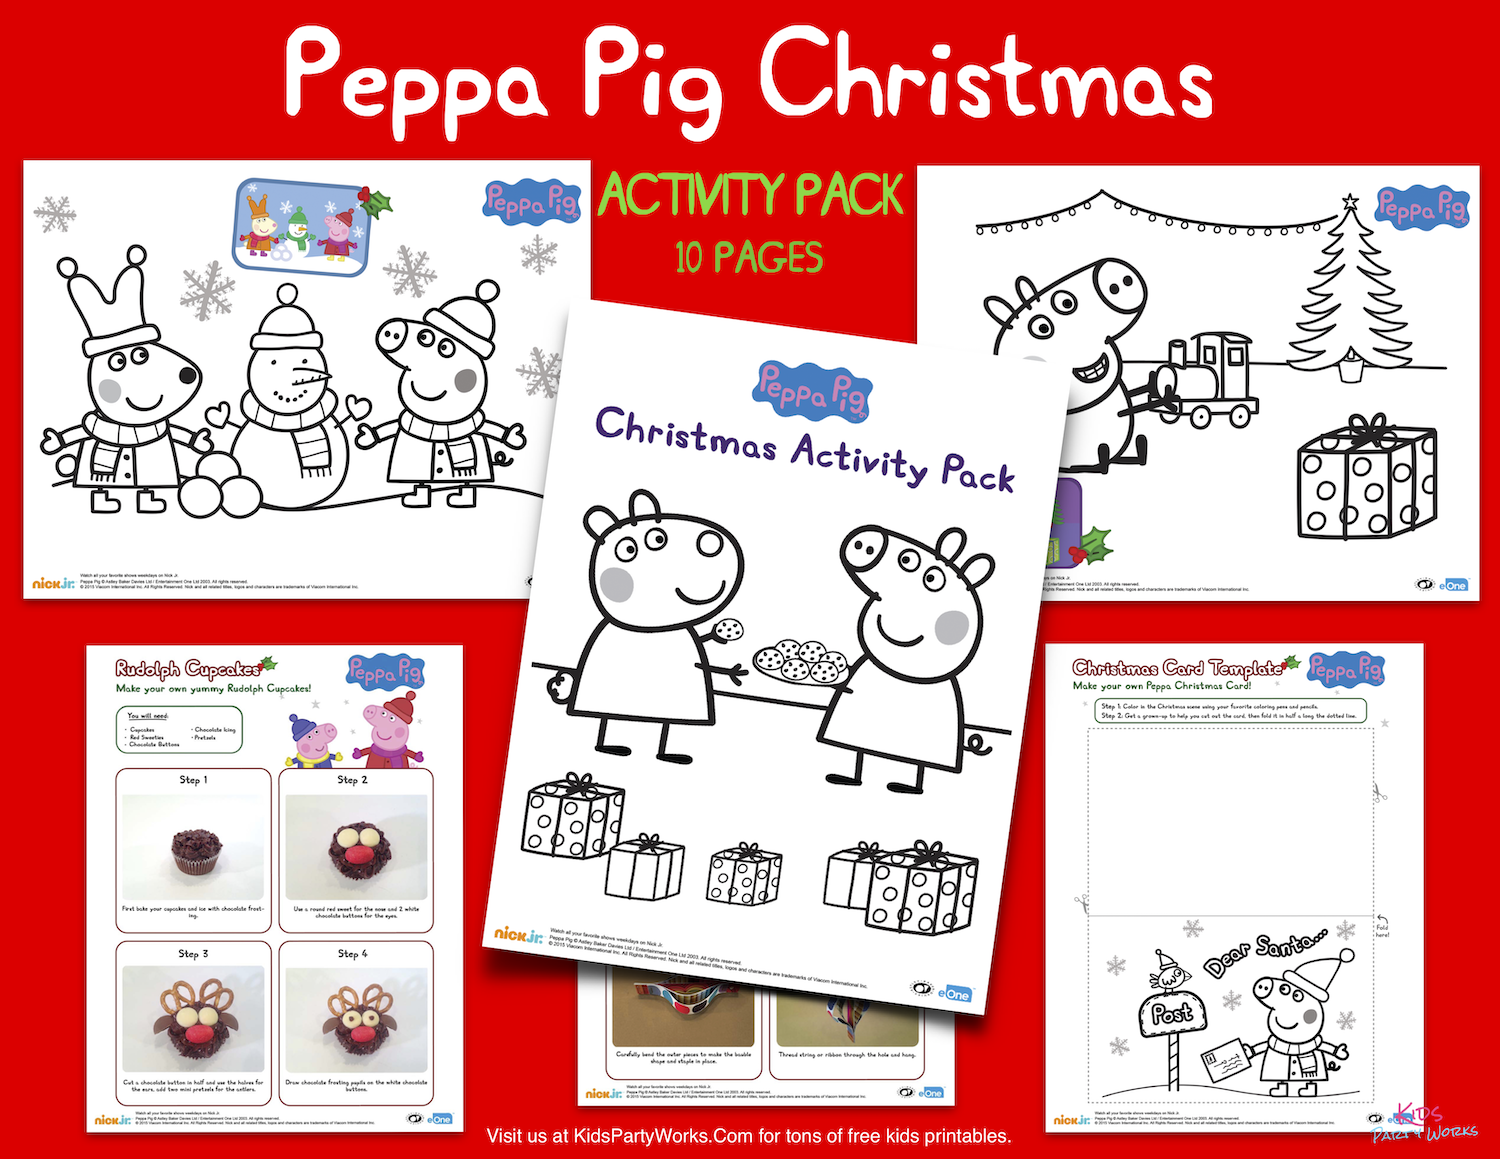 Free Peppa Pig Christmas Coloring Pages Kidspartyworks Com Christmas Coloring Pages Peppa Pig Christmas Free Christmas Coloring Pages [ 1159 x 1500 Pixel ]